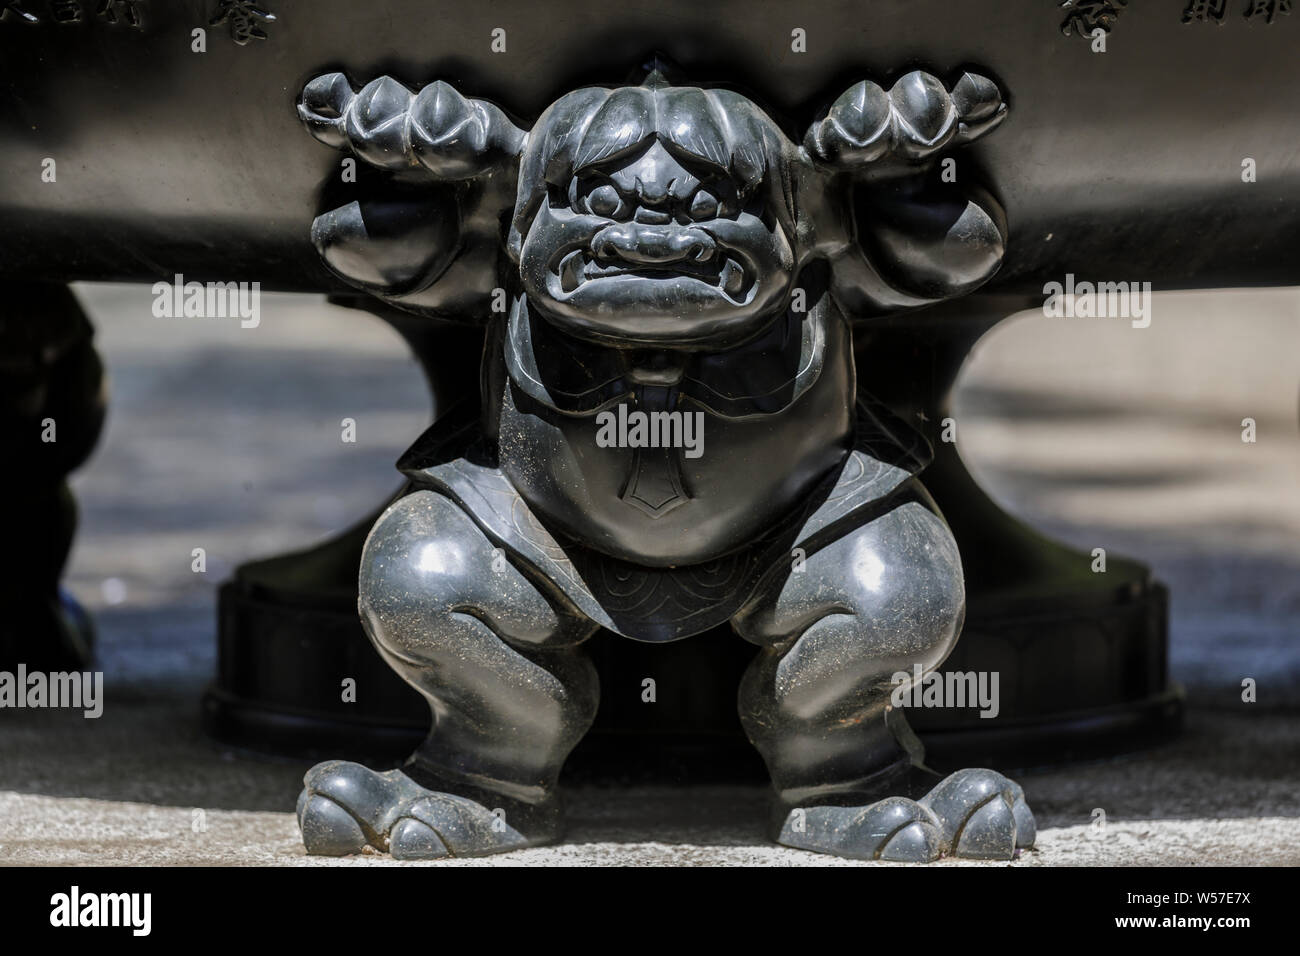 Carved figure on a giant urn at Gotokuji Temple in Setagaya city, Tokyo, Japan. Stock Photo